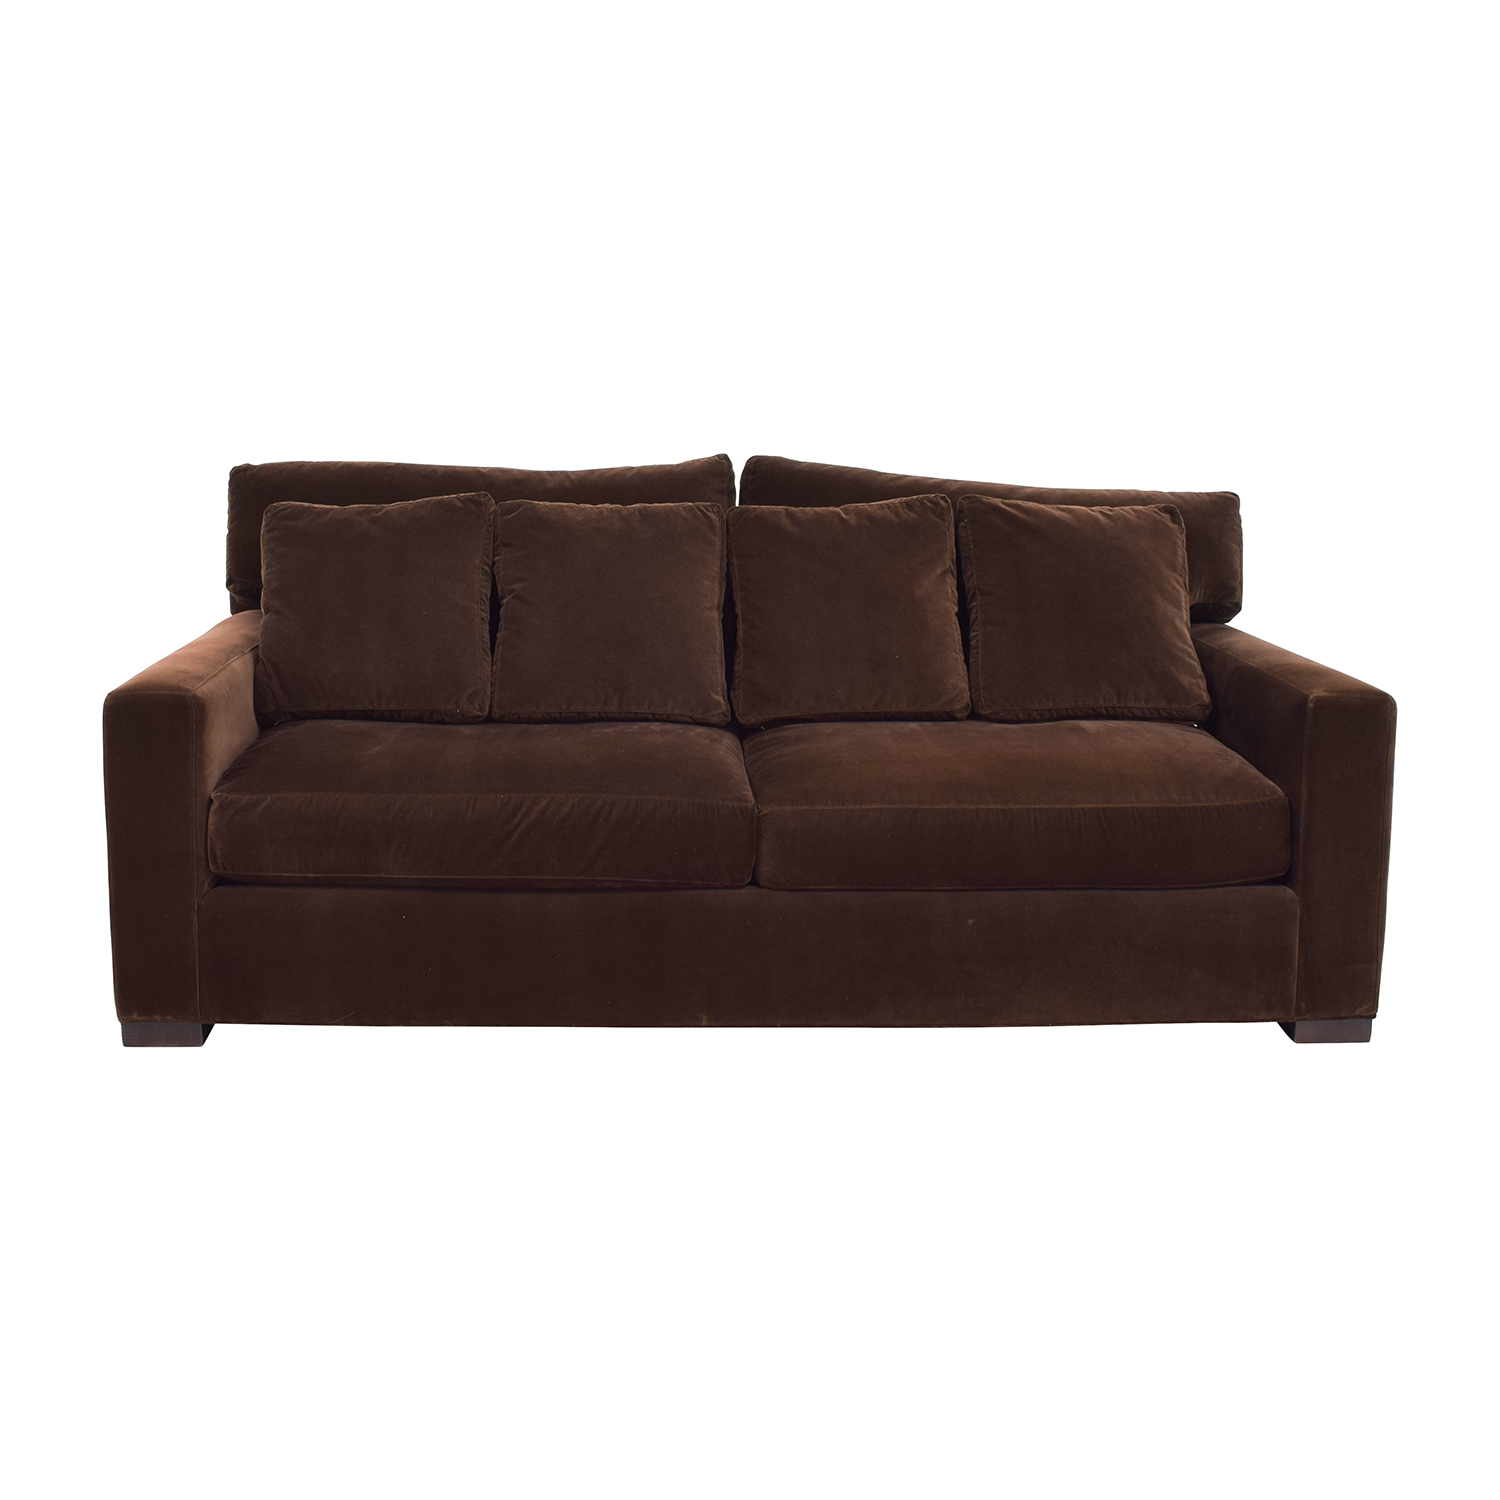 Bon Crate And Barrel Crate U0026 Barrel Axis II Brown Velvet Sofa On ...